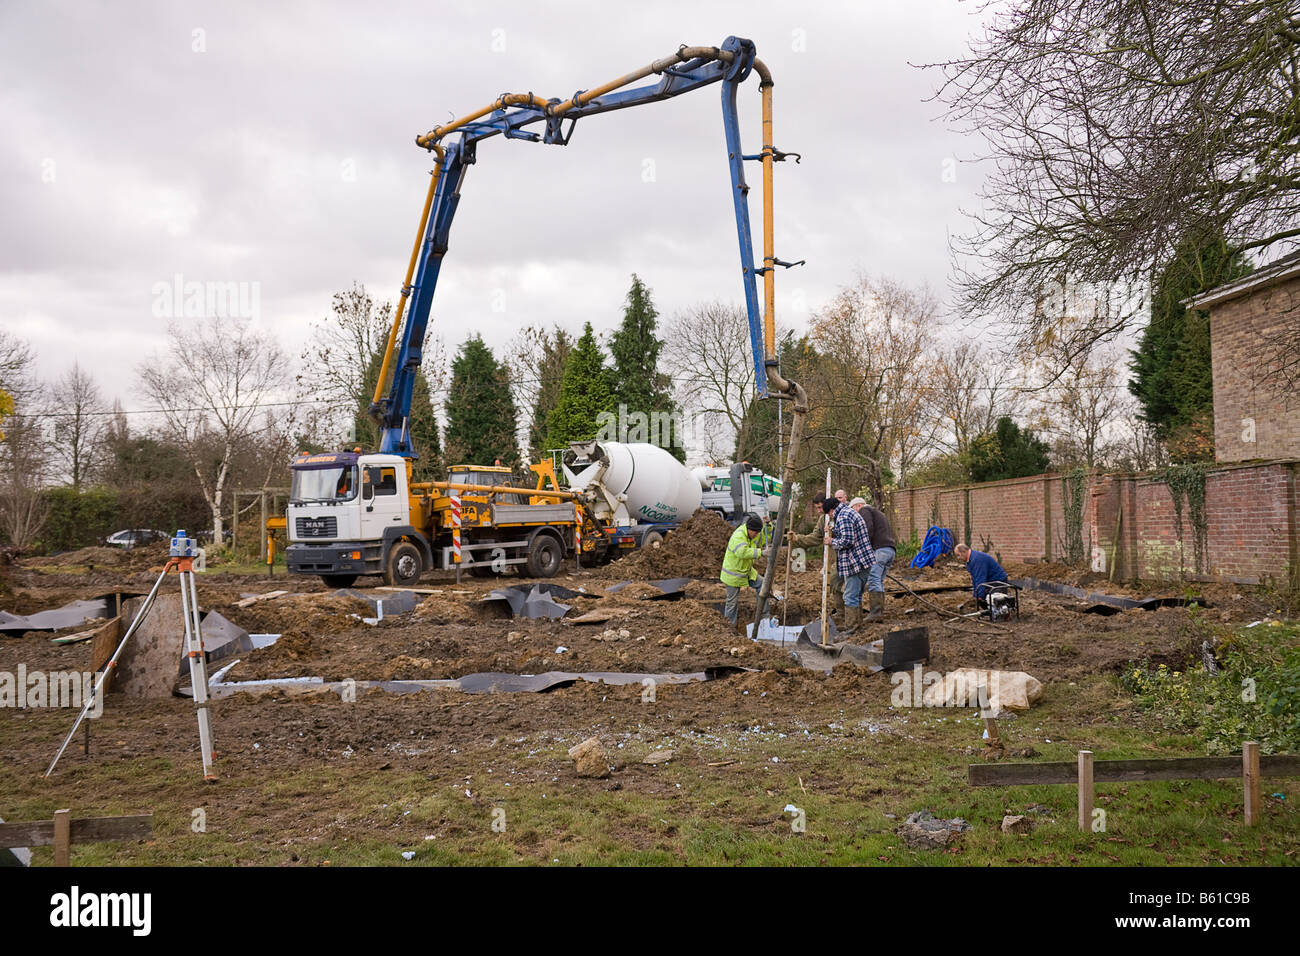 A general view across the building plot with Cement Pump in position. - Stock Image